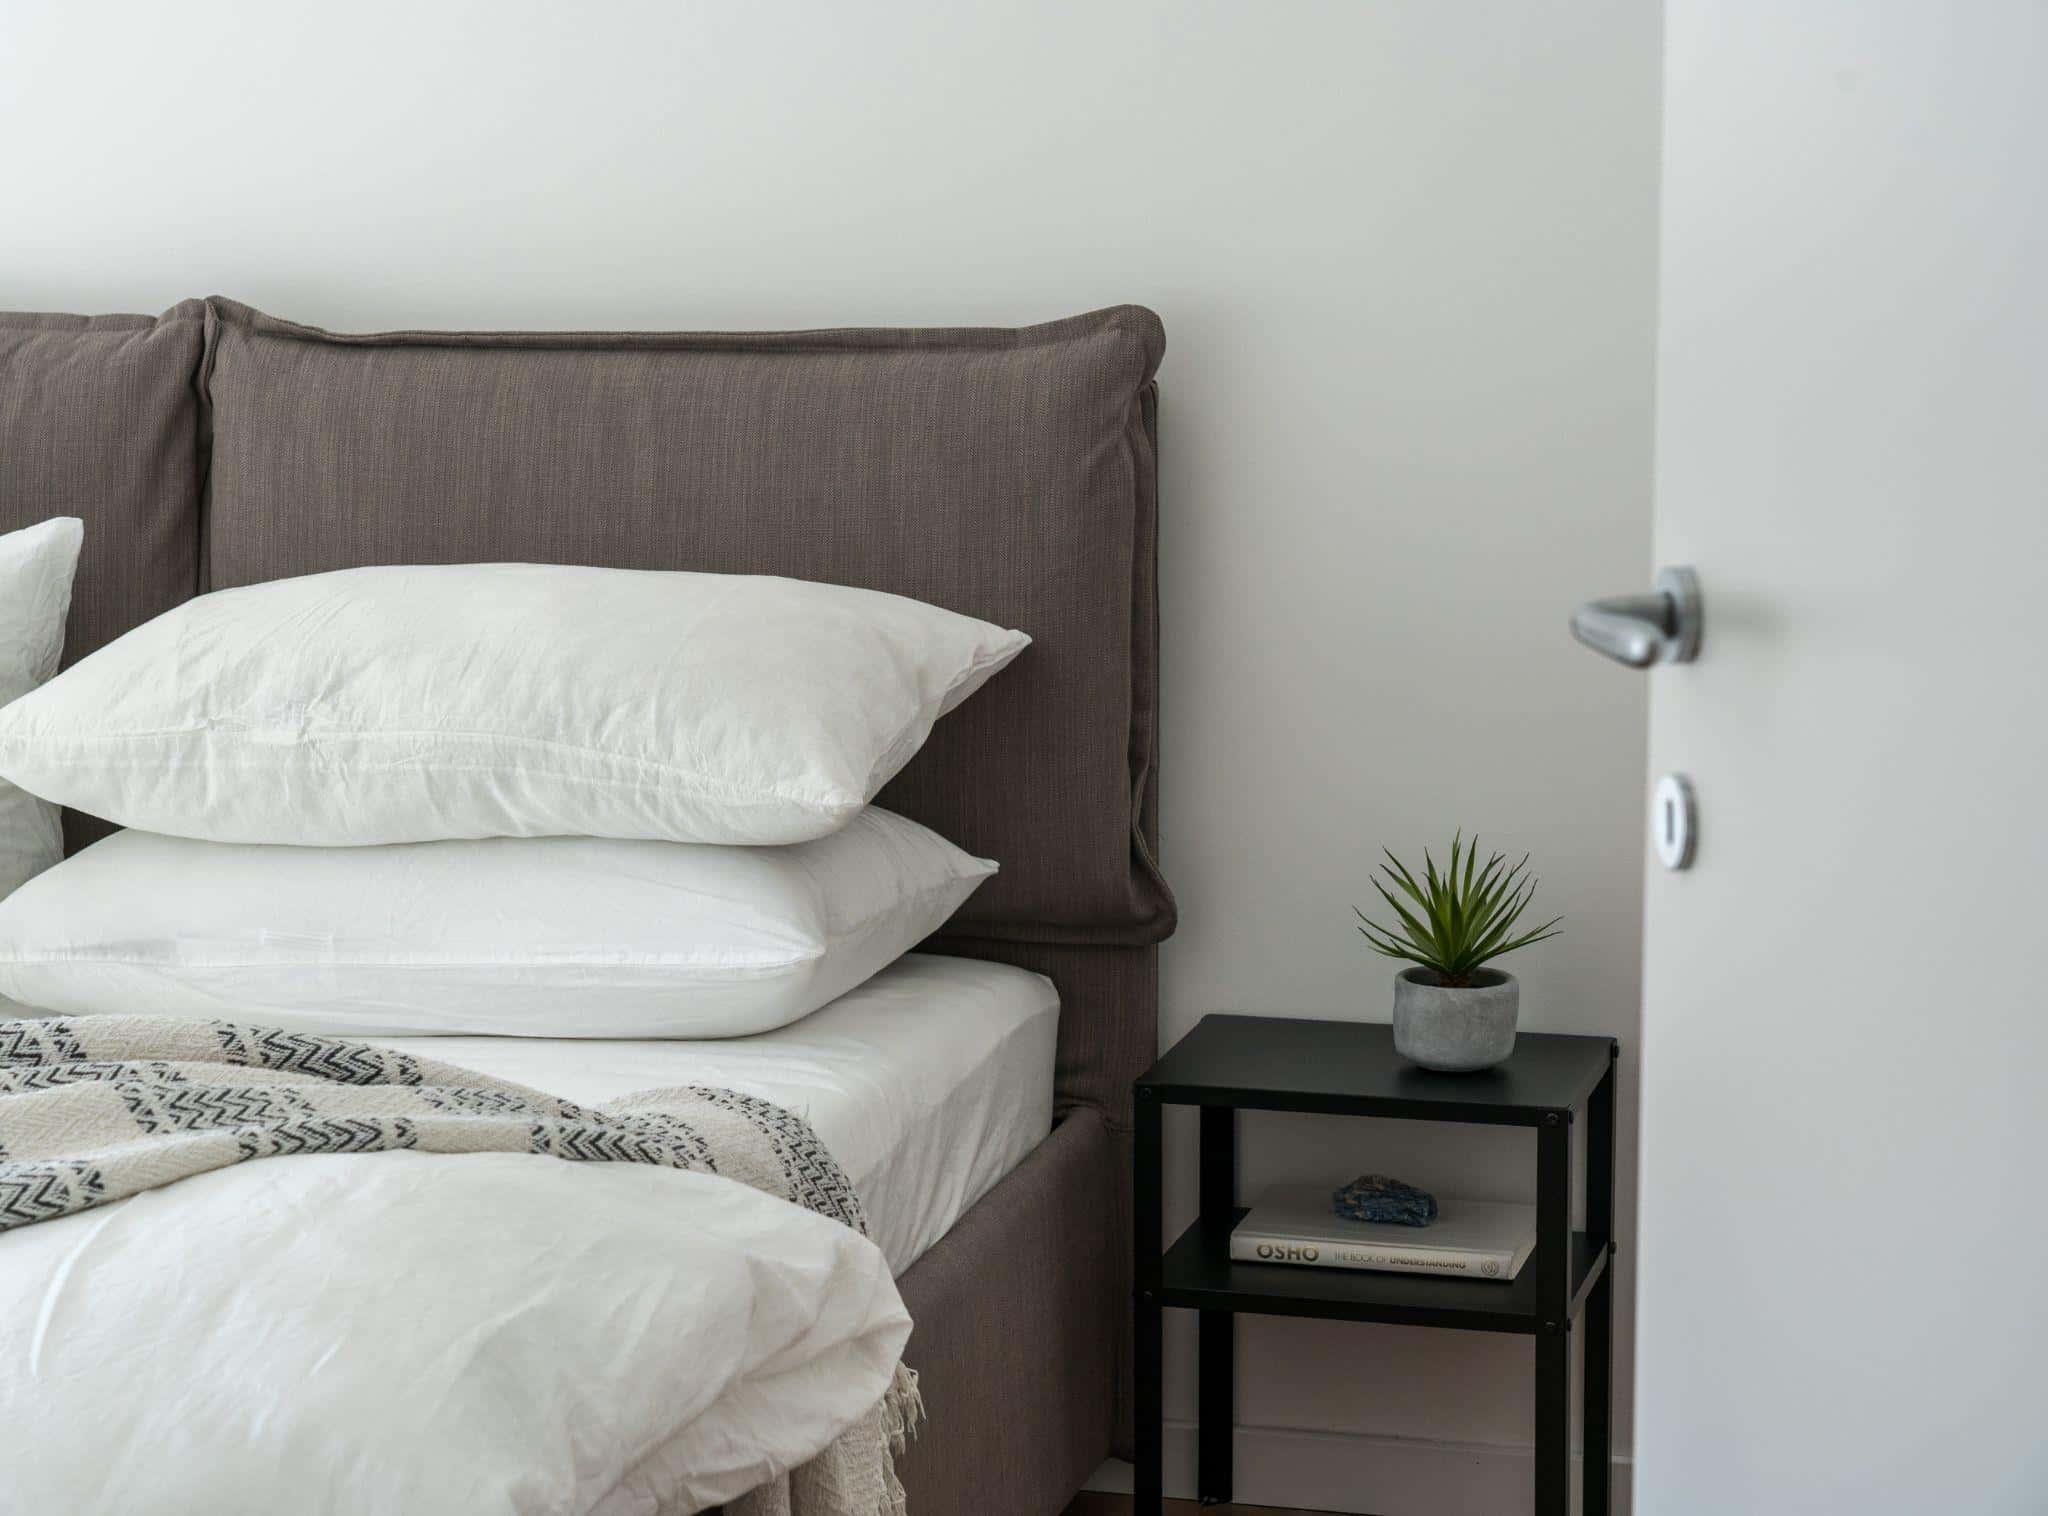 How To Choose A Perfect Bedding: Useful Tips. Reserved interior decoration in casual style with dark bedding and light walls